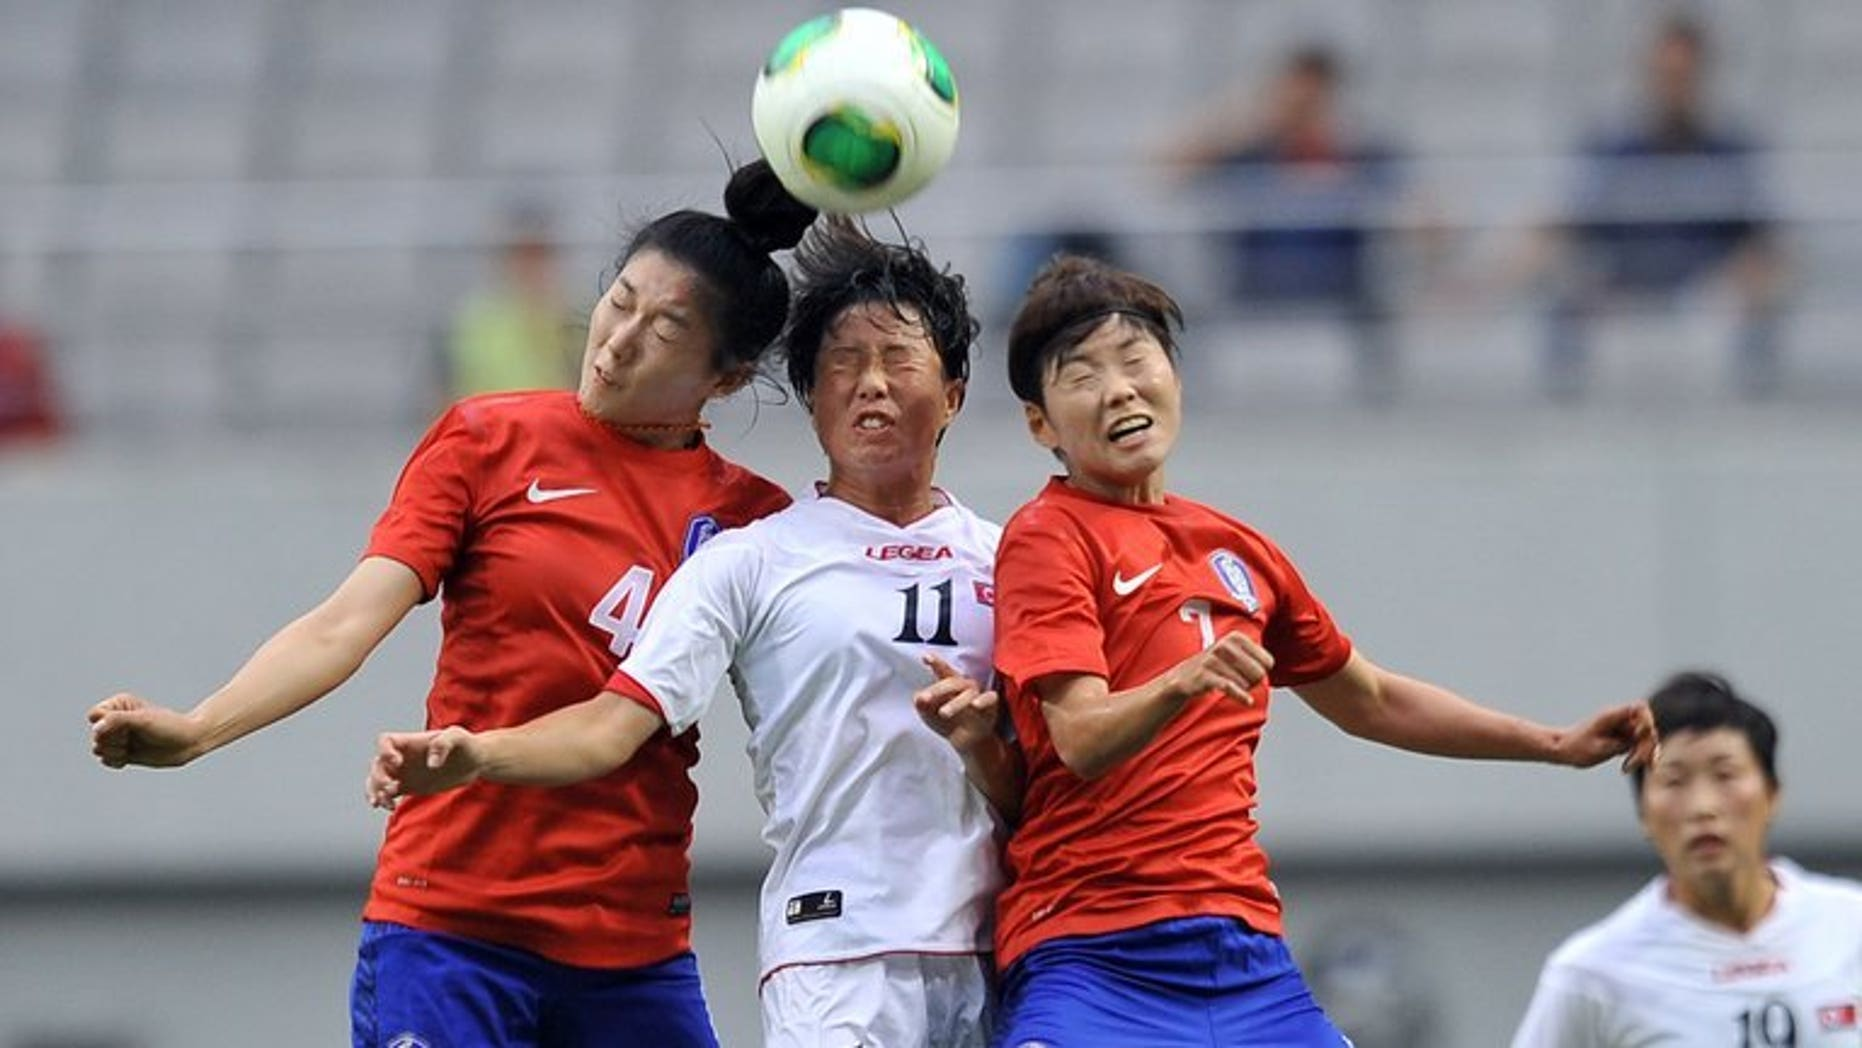 North Korea's Ri Ye-Gyong (centre) competes with South Korea's Shim Seo-Yeon (left) and Jeon Ga-Eul (right) during the Women's East Asian Cup football match in Seoul on July 21, 2013. North Korea won the match 2-1.